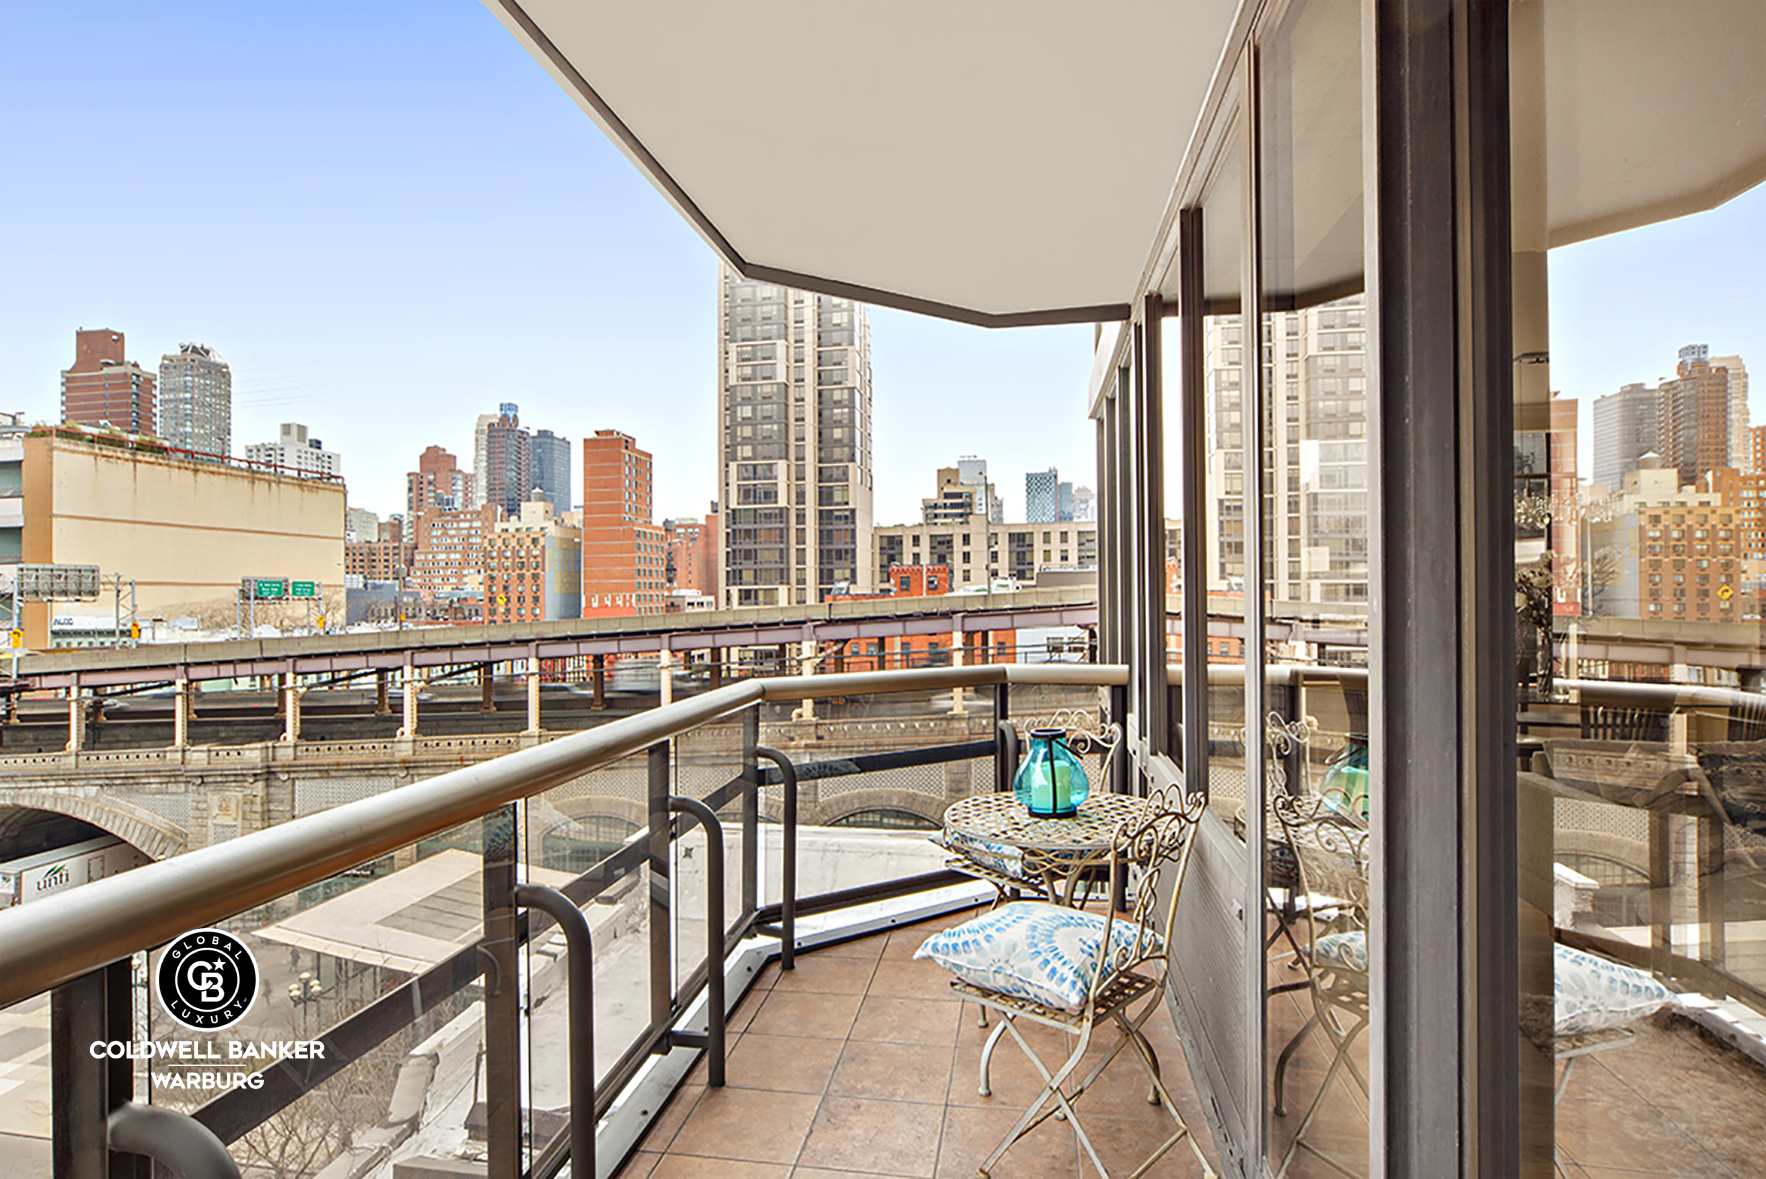 418 East 59th Street Sutton Place New York NY 10022